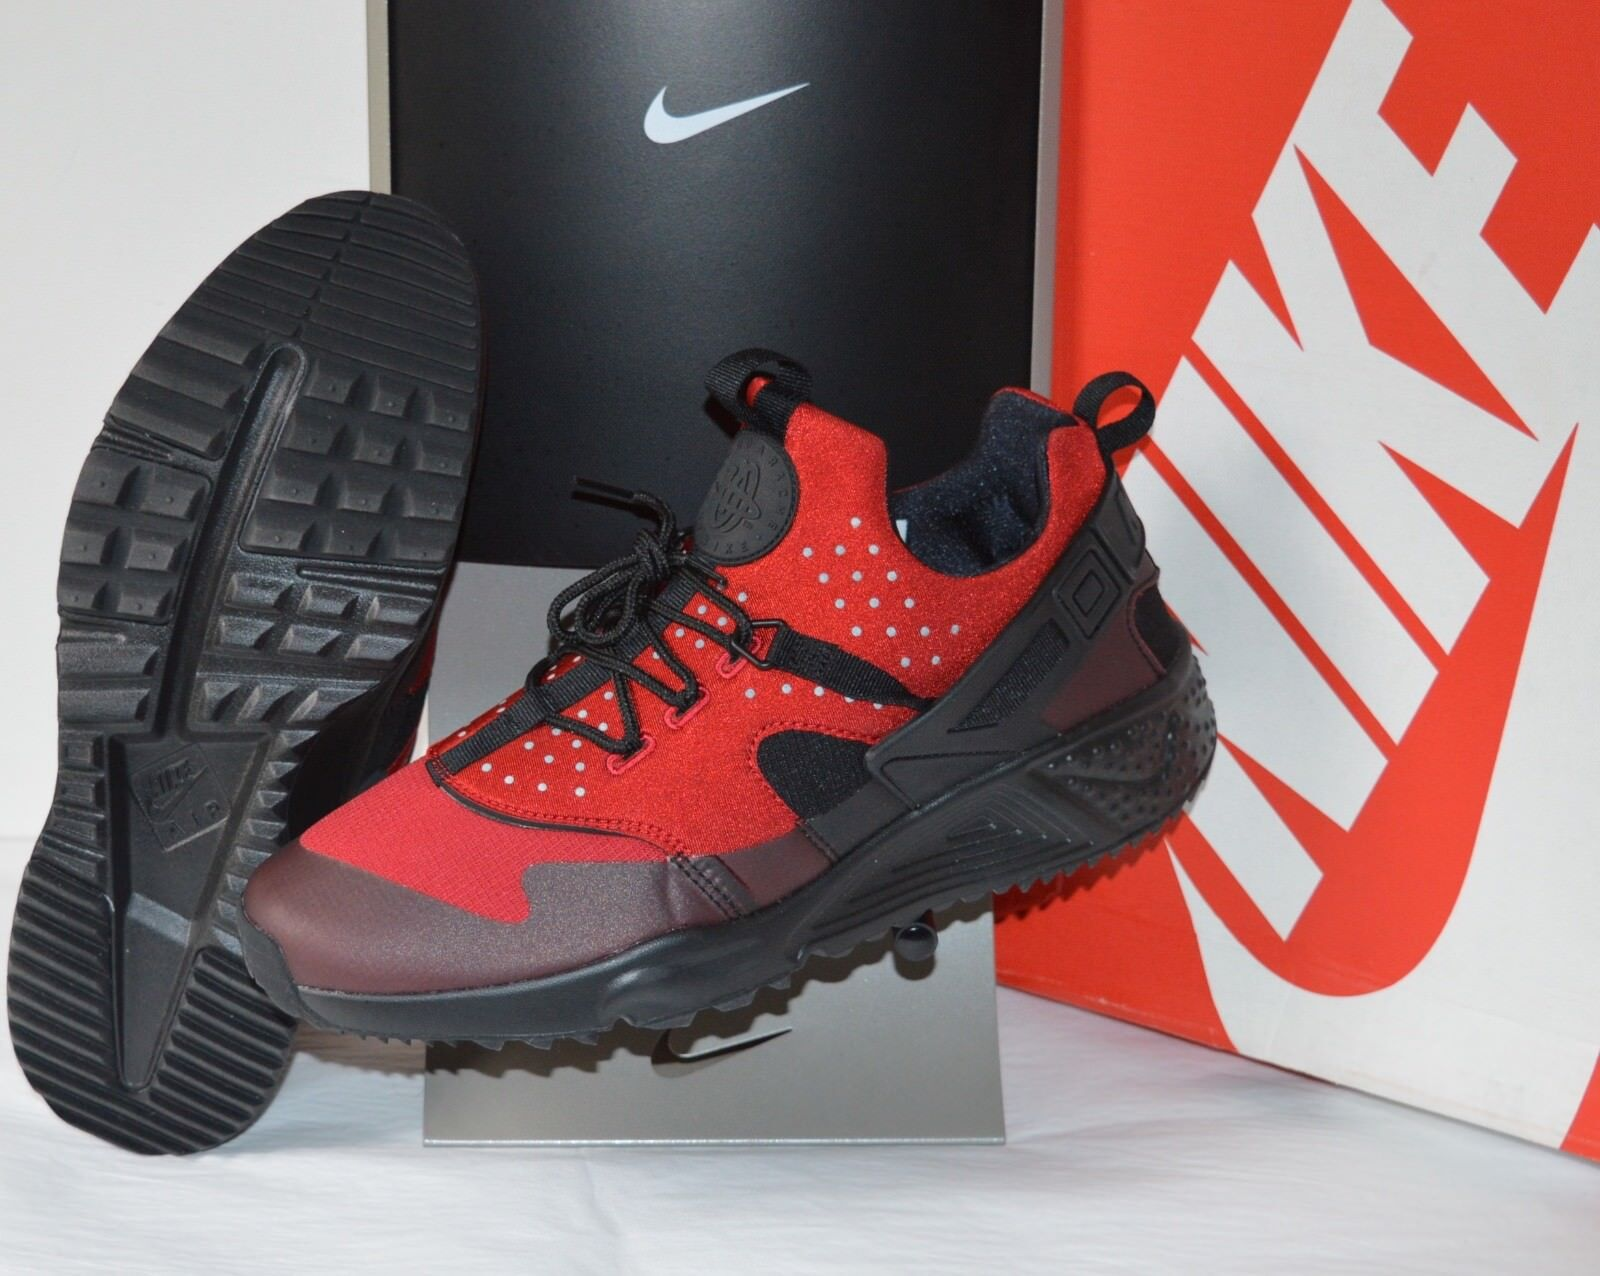 ba15e93438 New Nike Air Huarache Utility Gym Red Black Running Retro sz 11 Cross  Training. Nike Air FLIGHT 2013 Flight 13 Mens Size ...